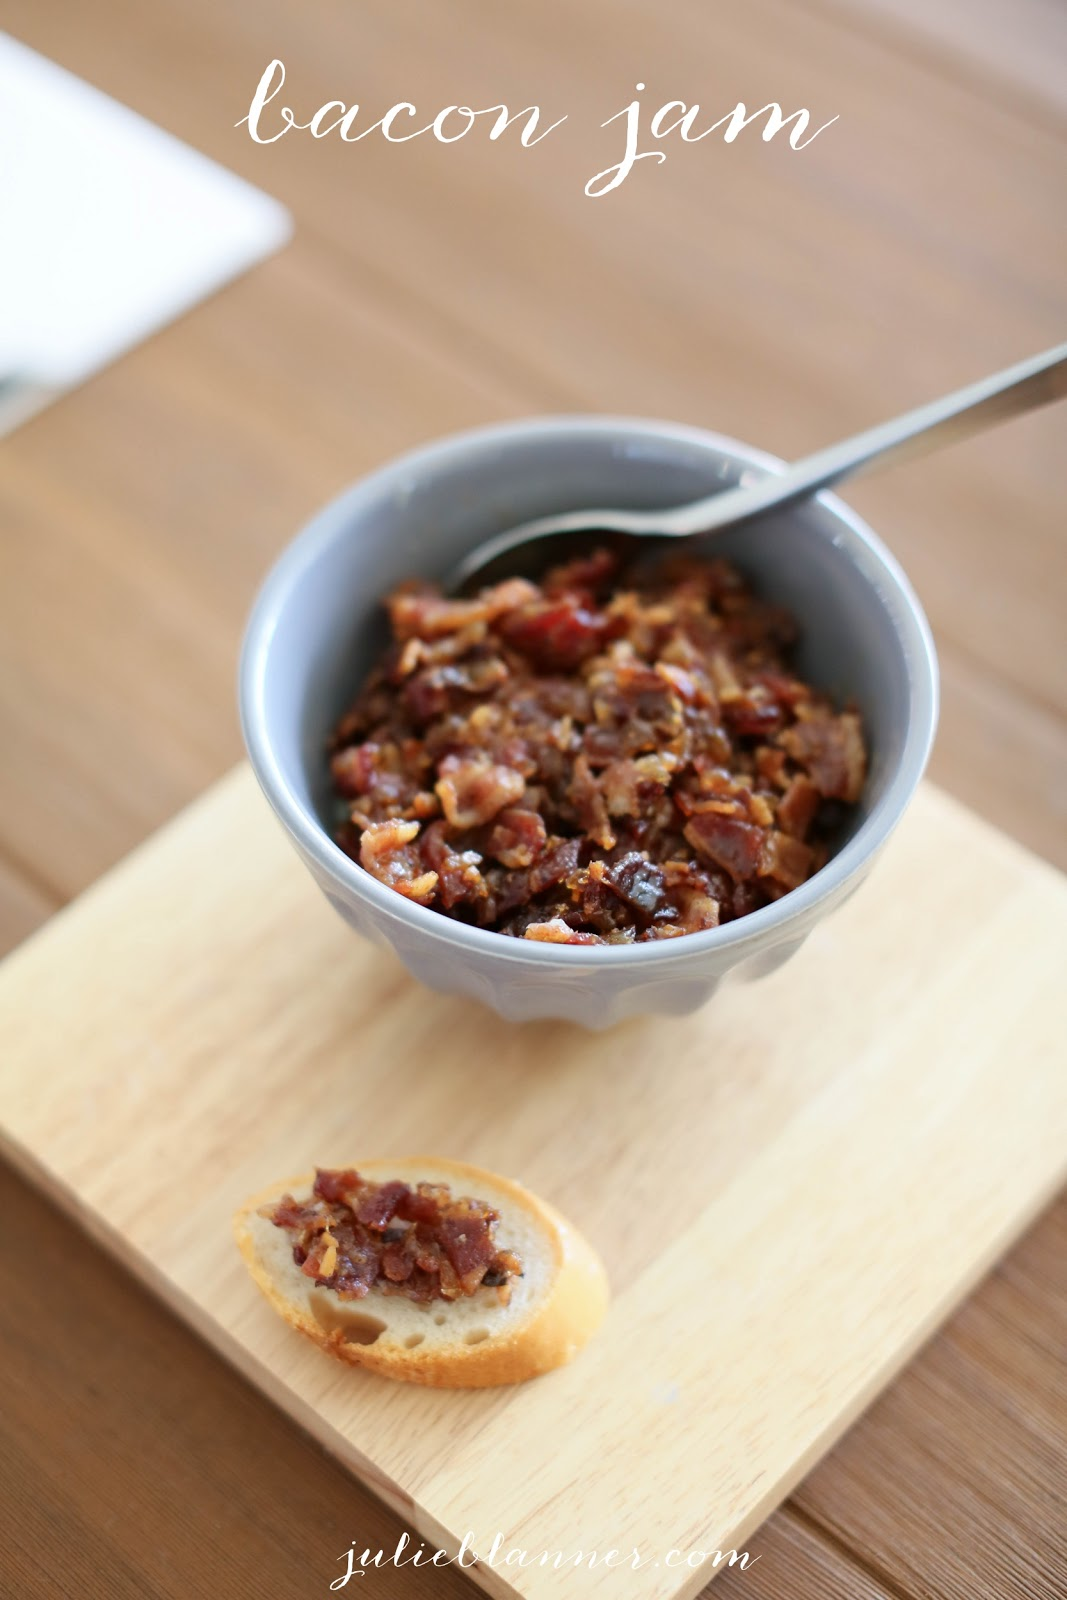 Bacon Jam Recipe & Ideas for Use - Julie Blanner entertaining & desig...